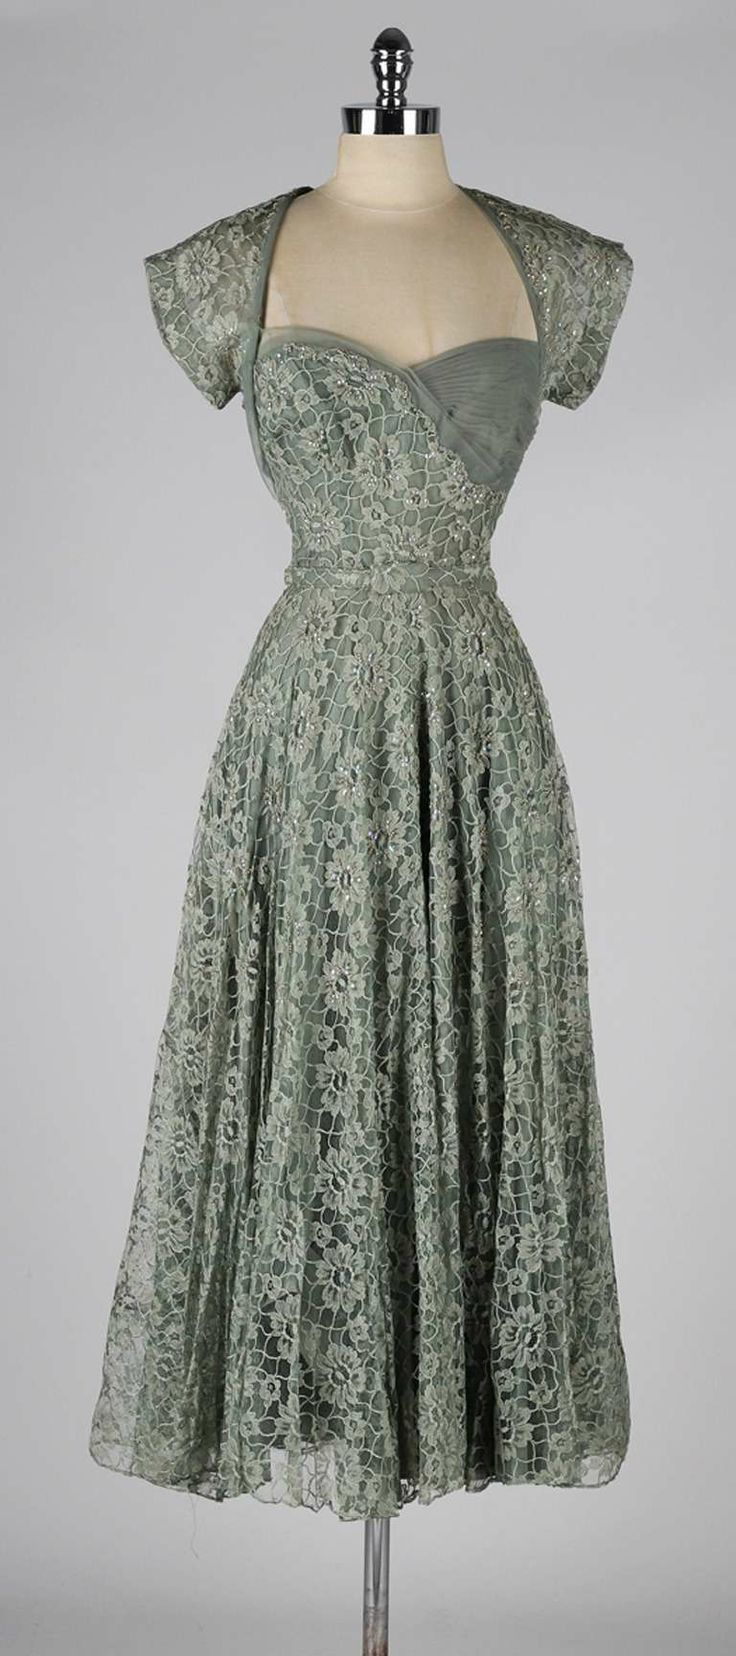 Dead rising cocktail dress wedding dress pinterest